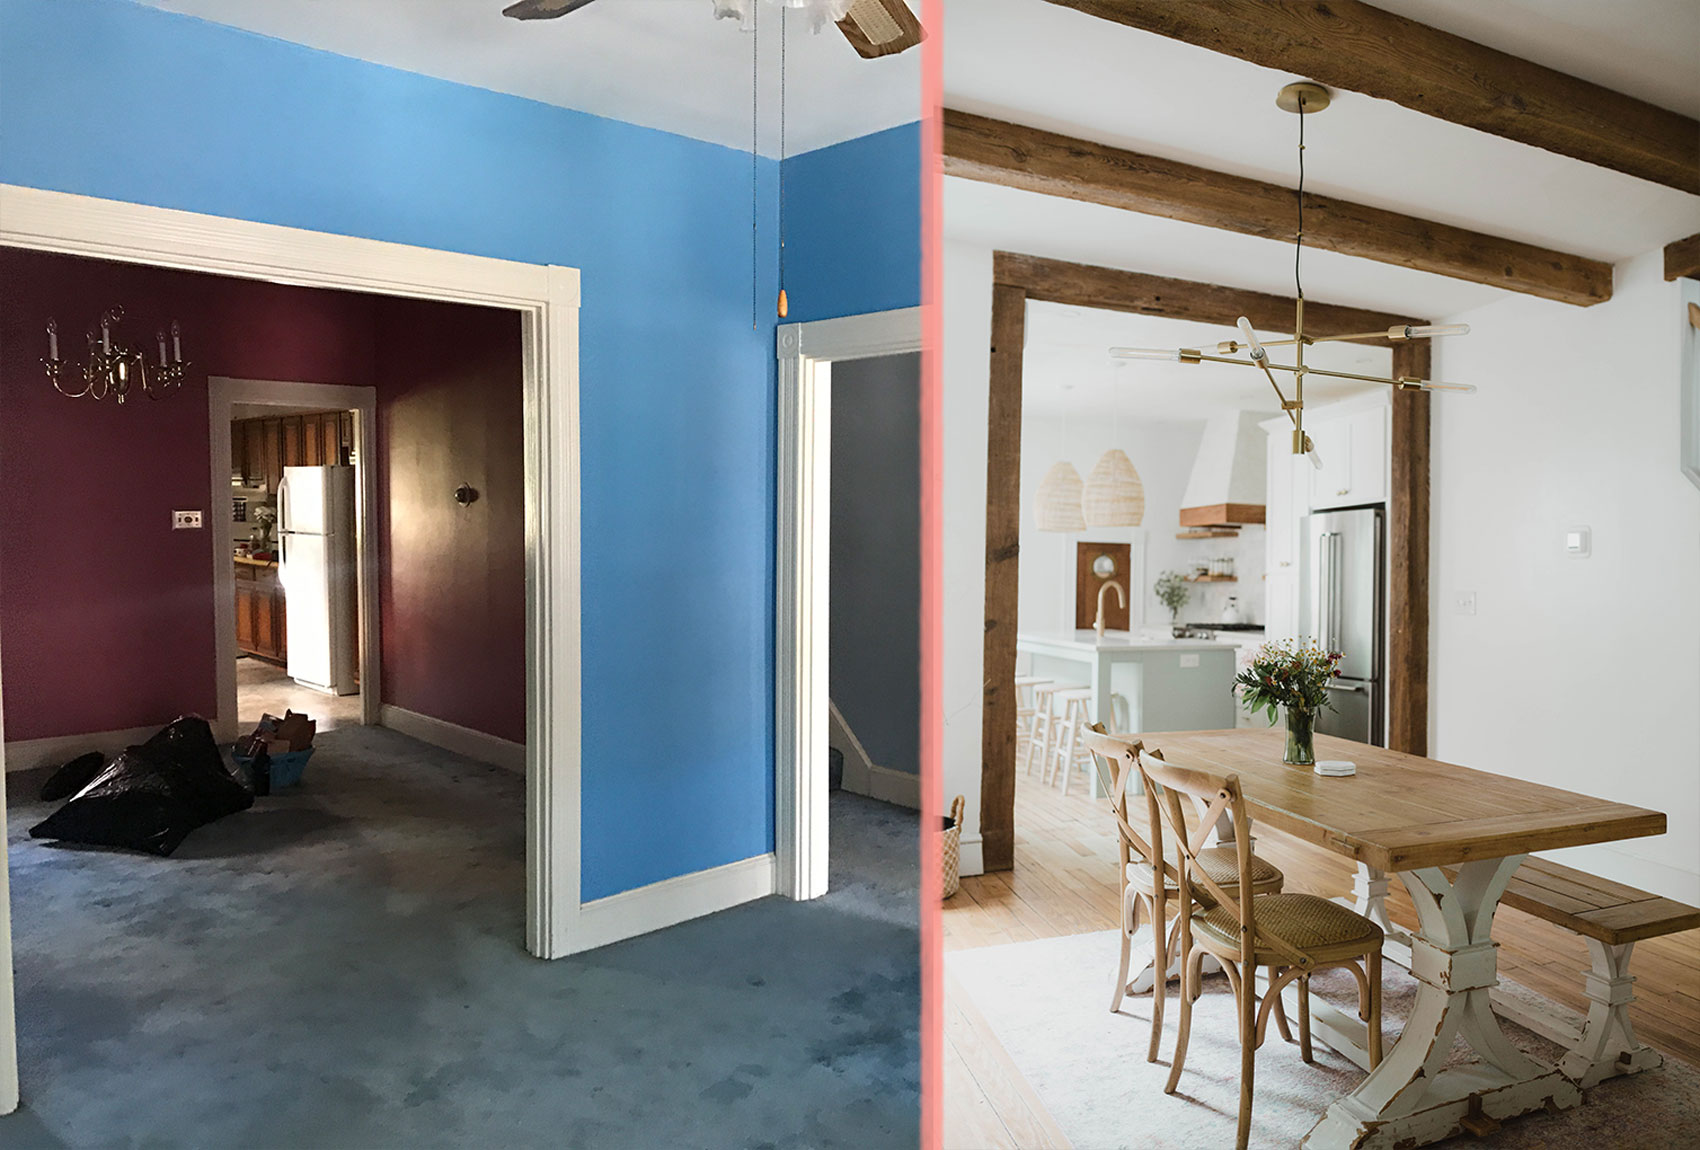 Design*Sponge | Enlisting Expertise to Transform an 1800s Row Home